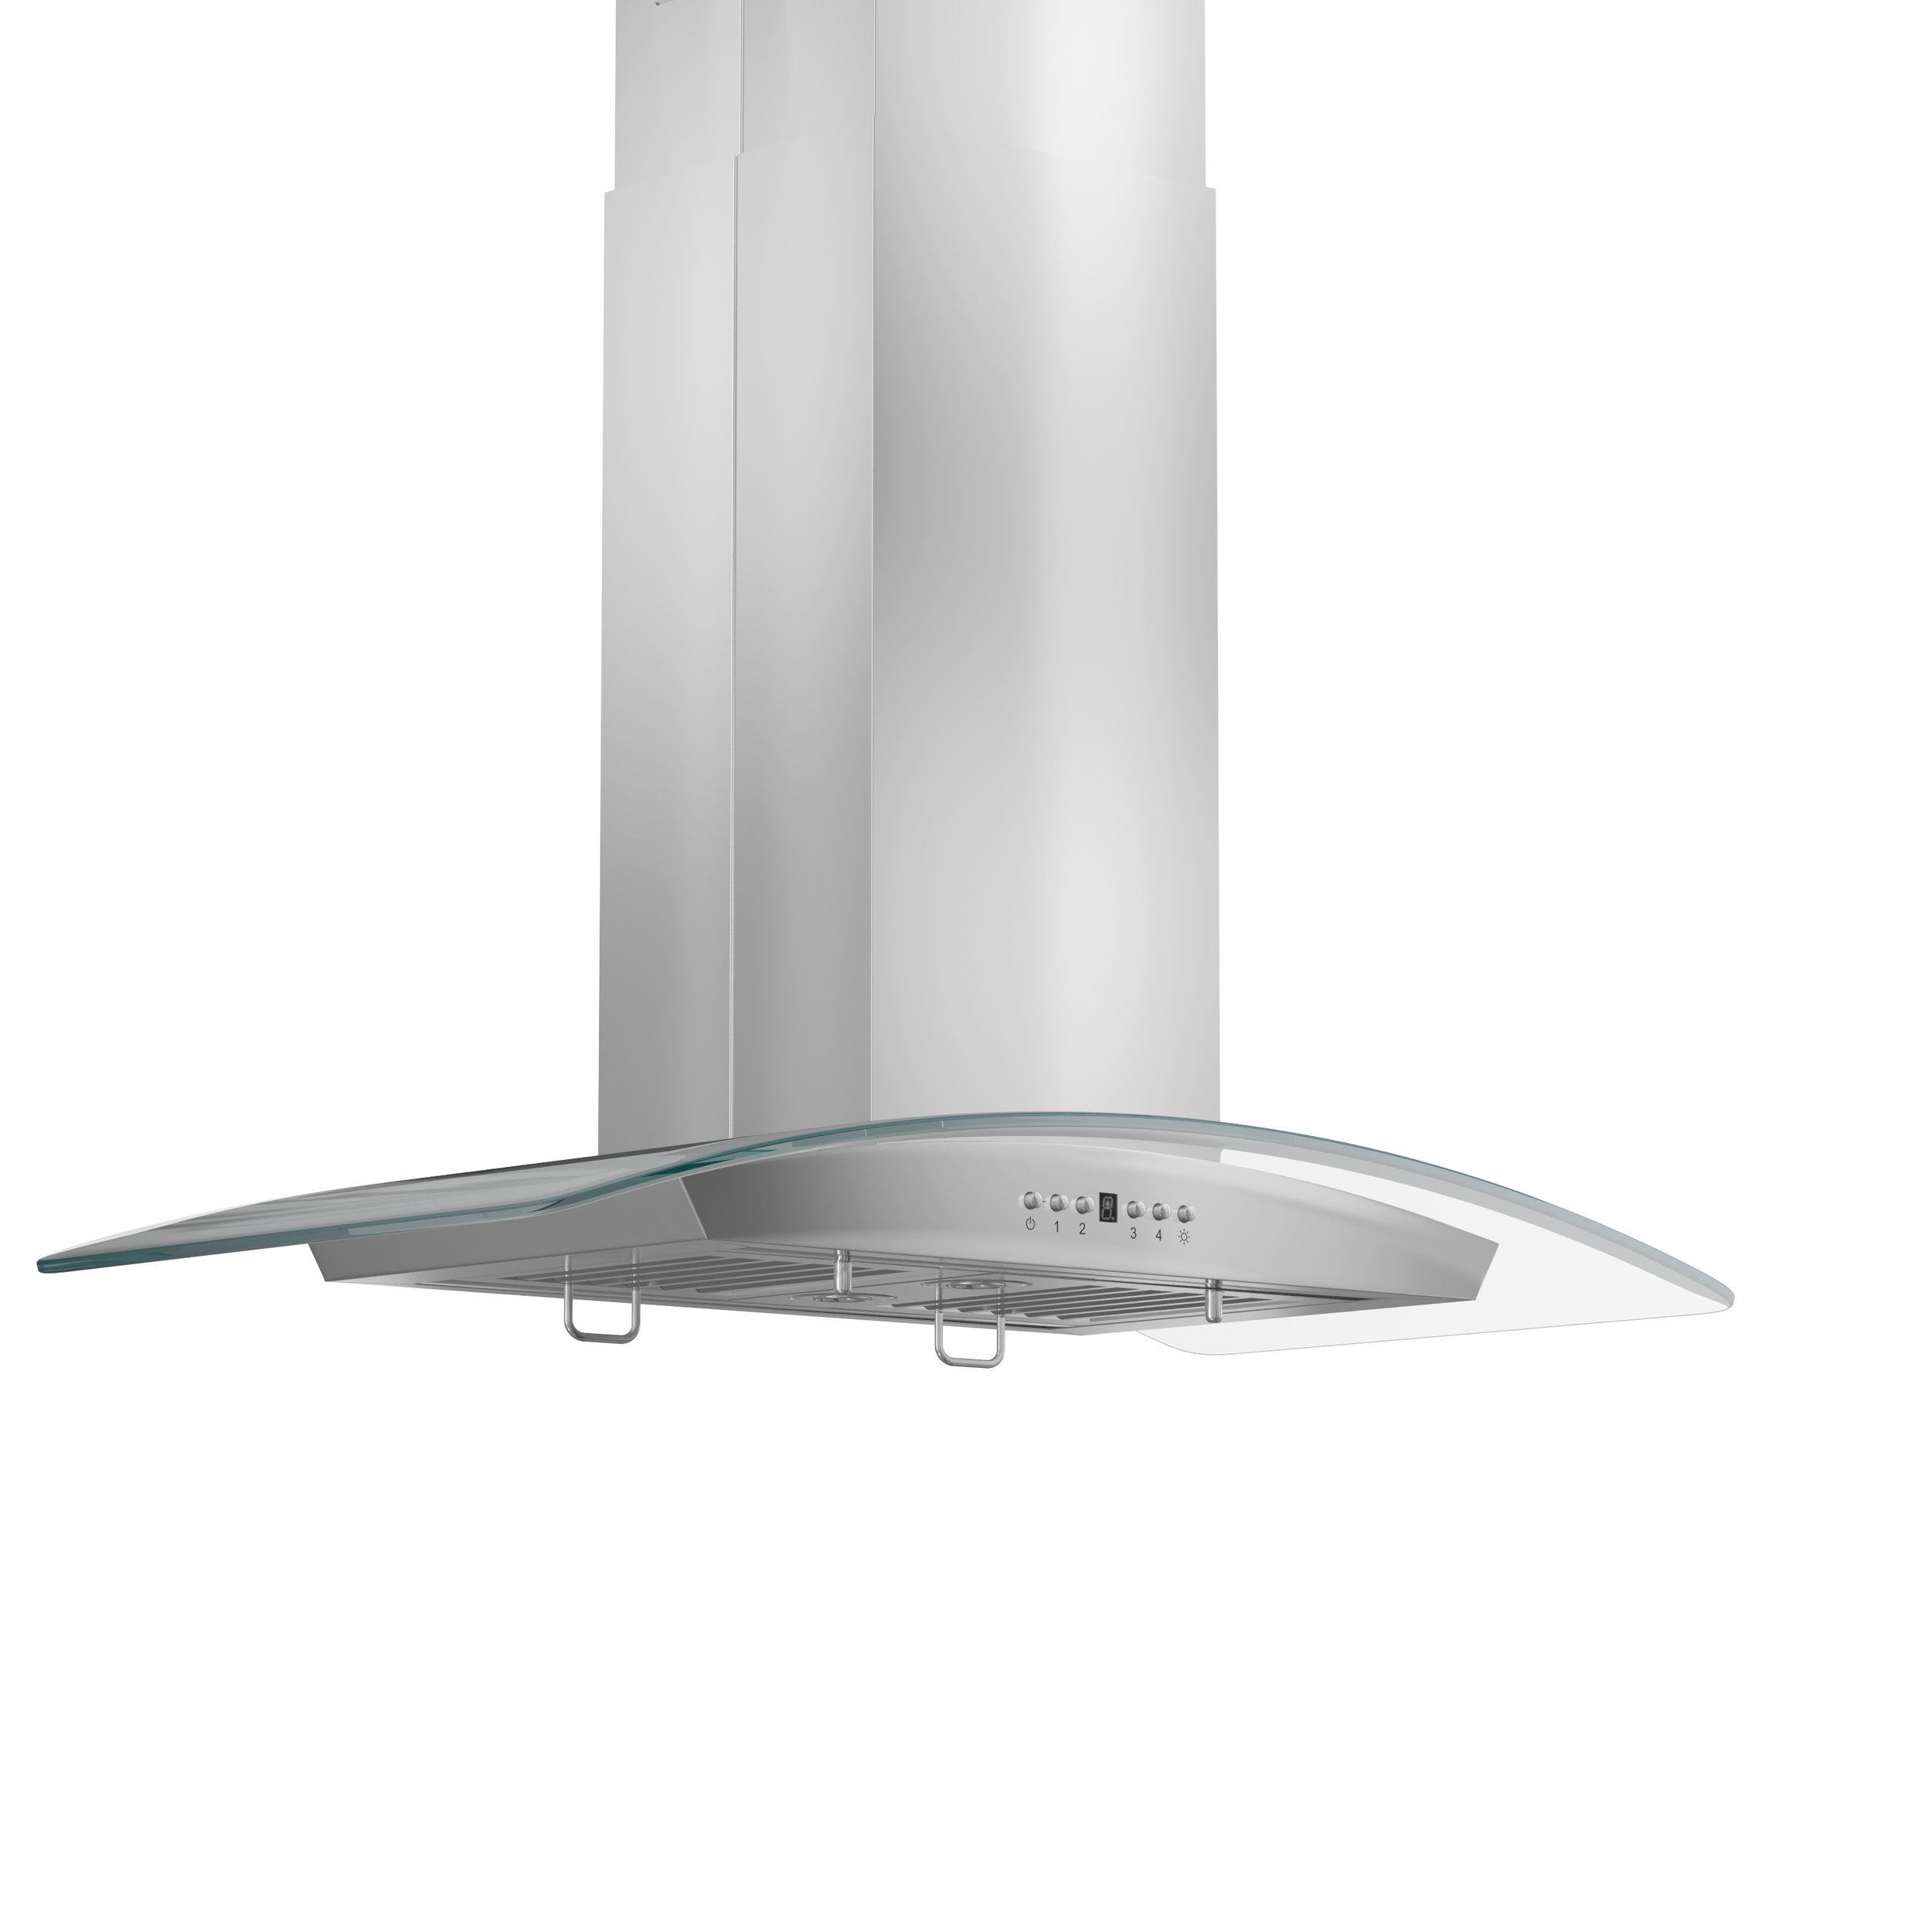 Ductless Stainless GL5i